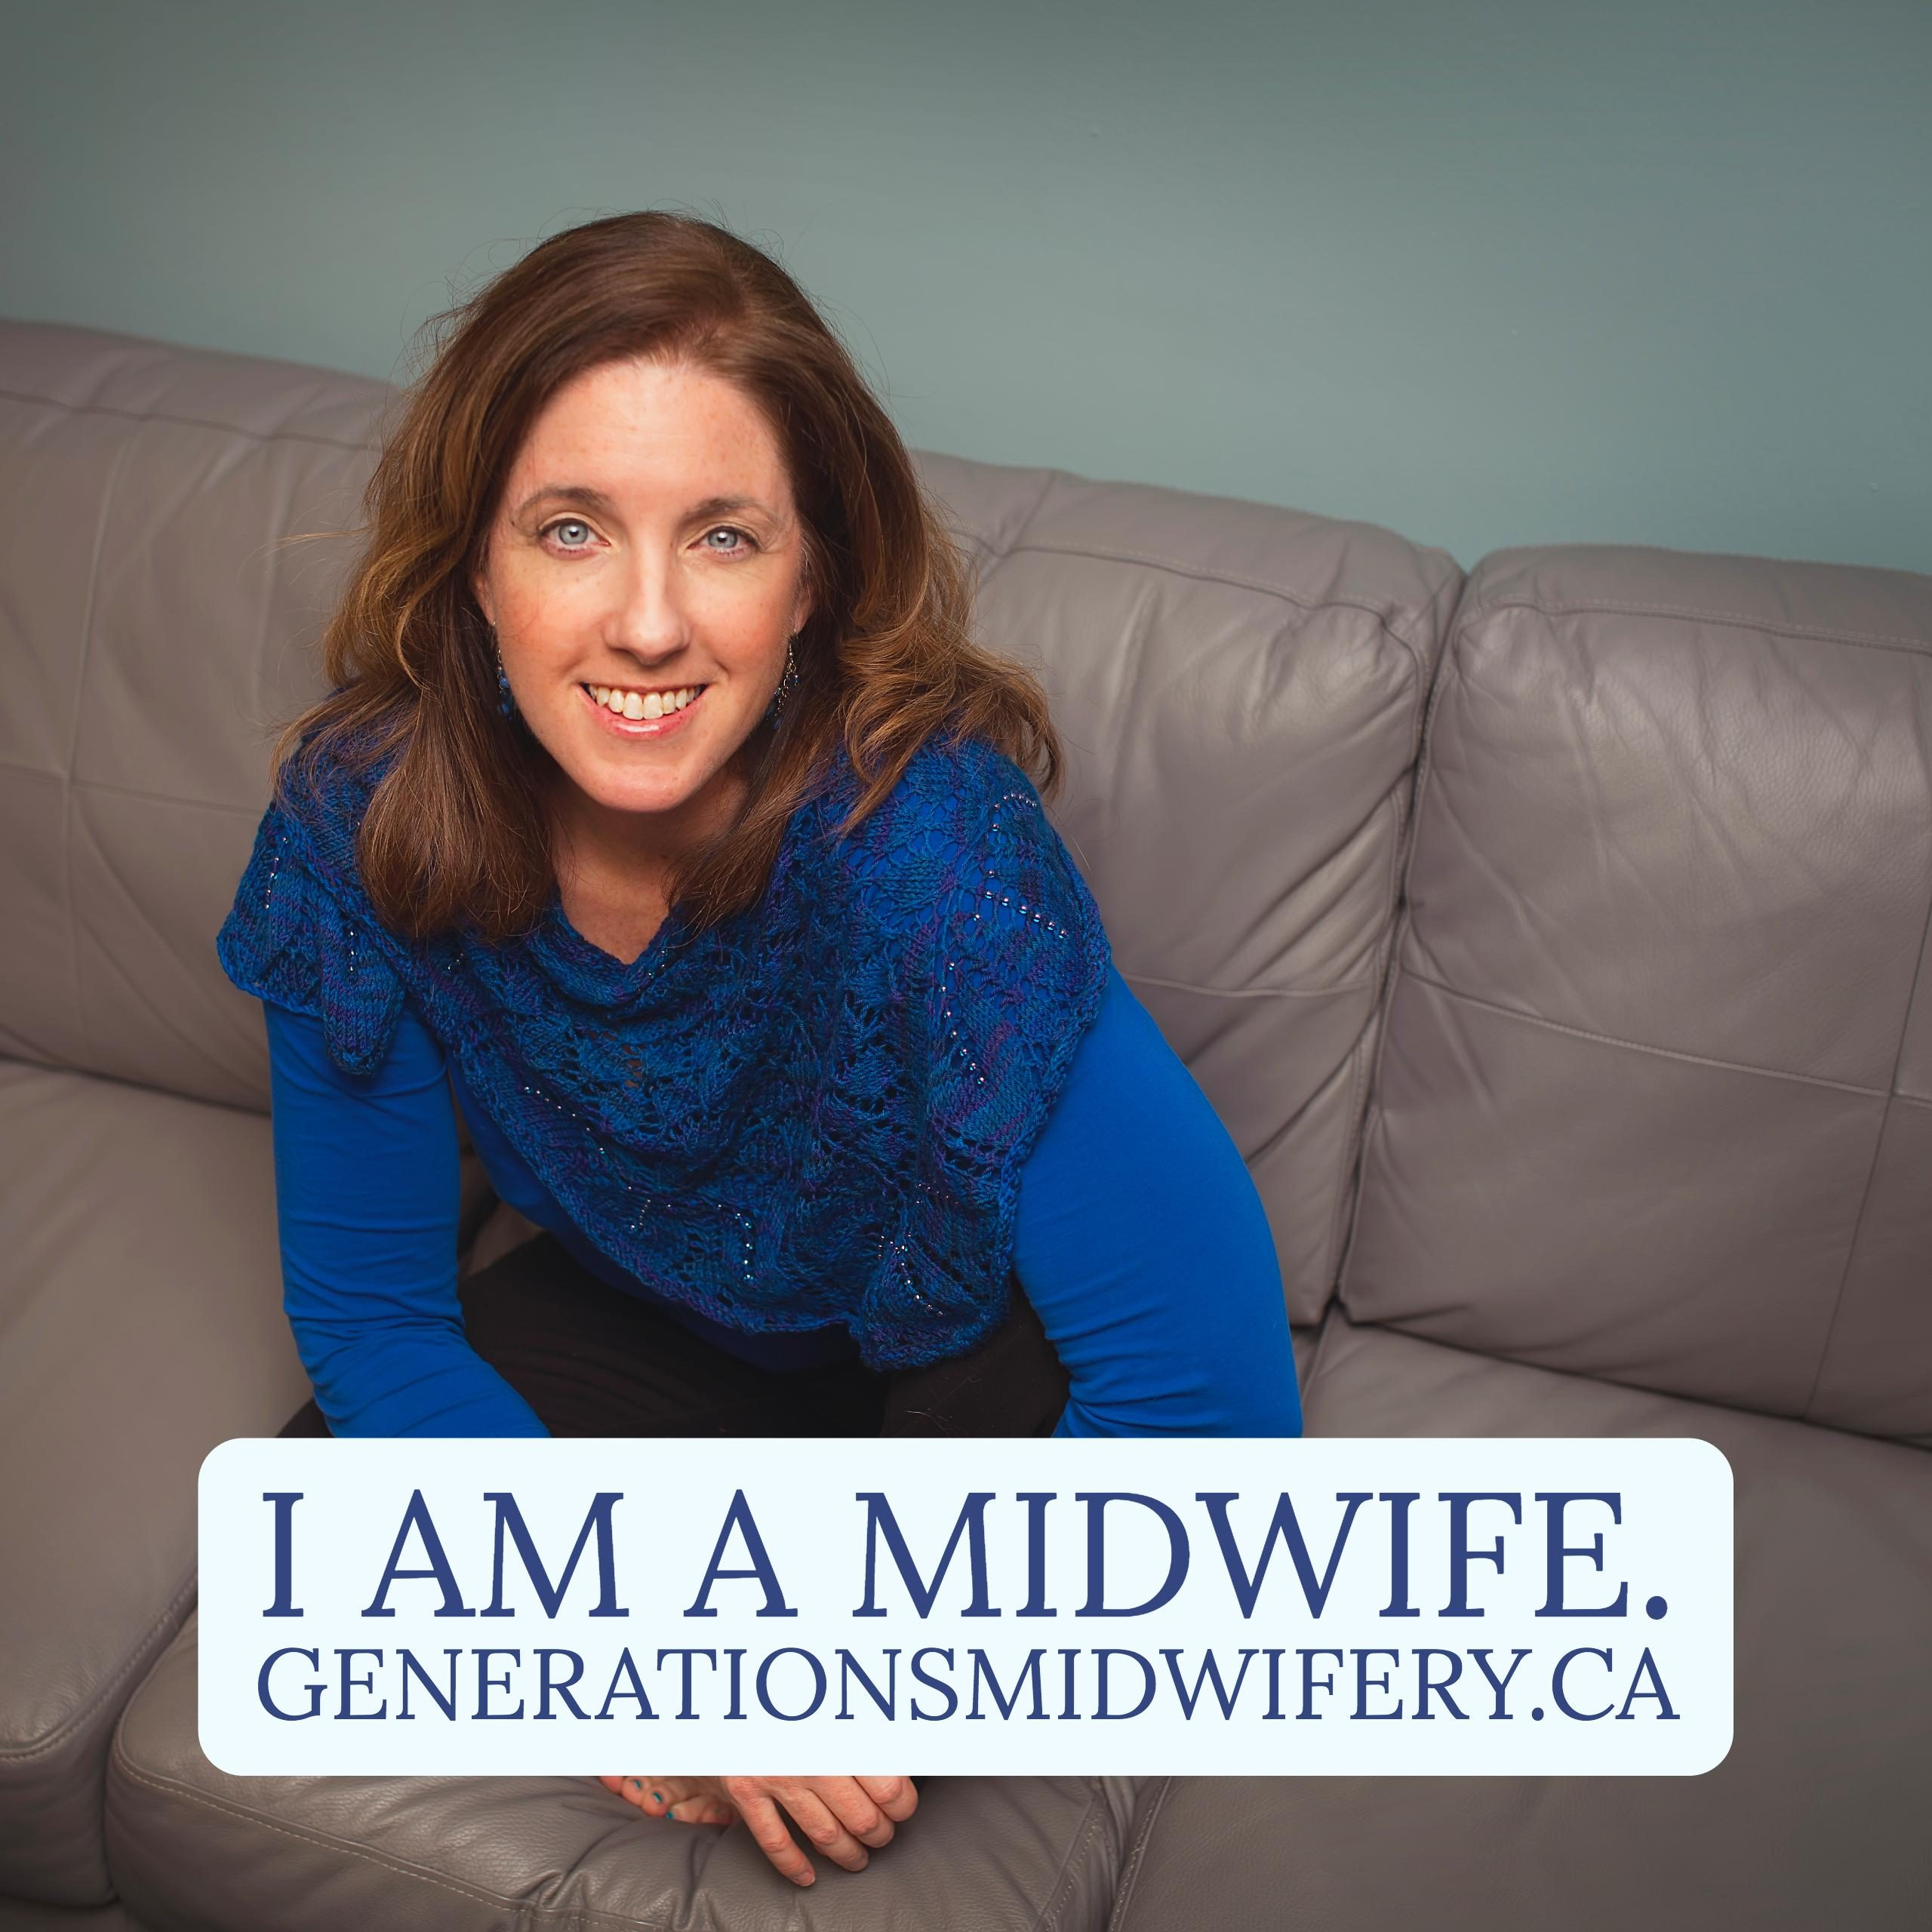 why i want to be a midwife Many people have asked me why would you want to be a midwife you know you have to work weekends you'll have to examine down there so much so that occasionally you just want scream yes, of course i blooming know the thing is, a midwives role is very diverse and is.